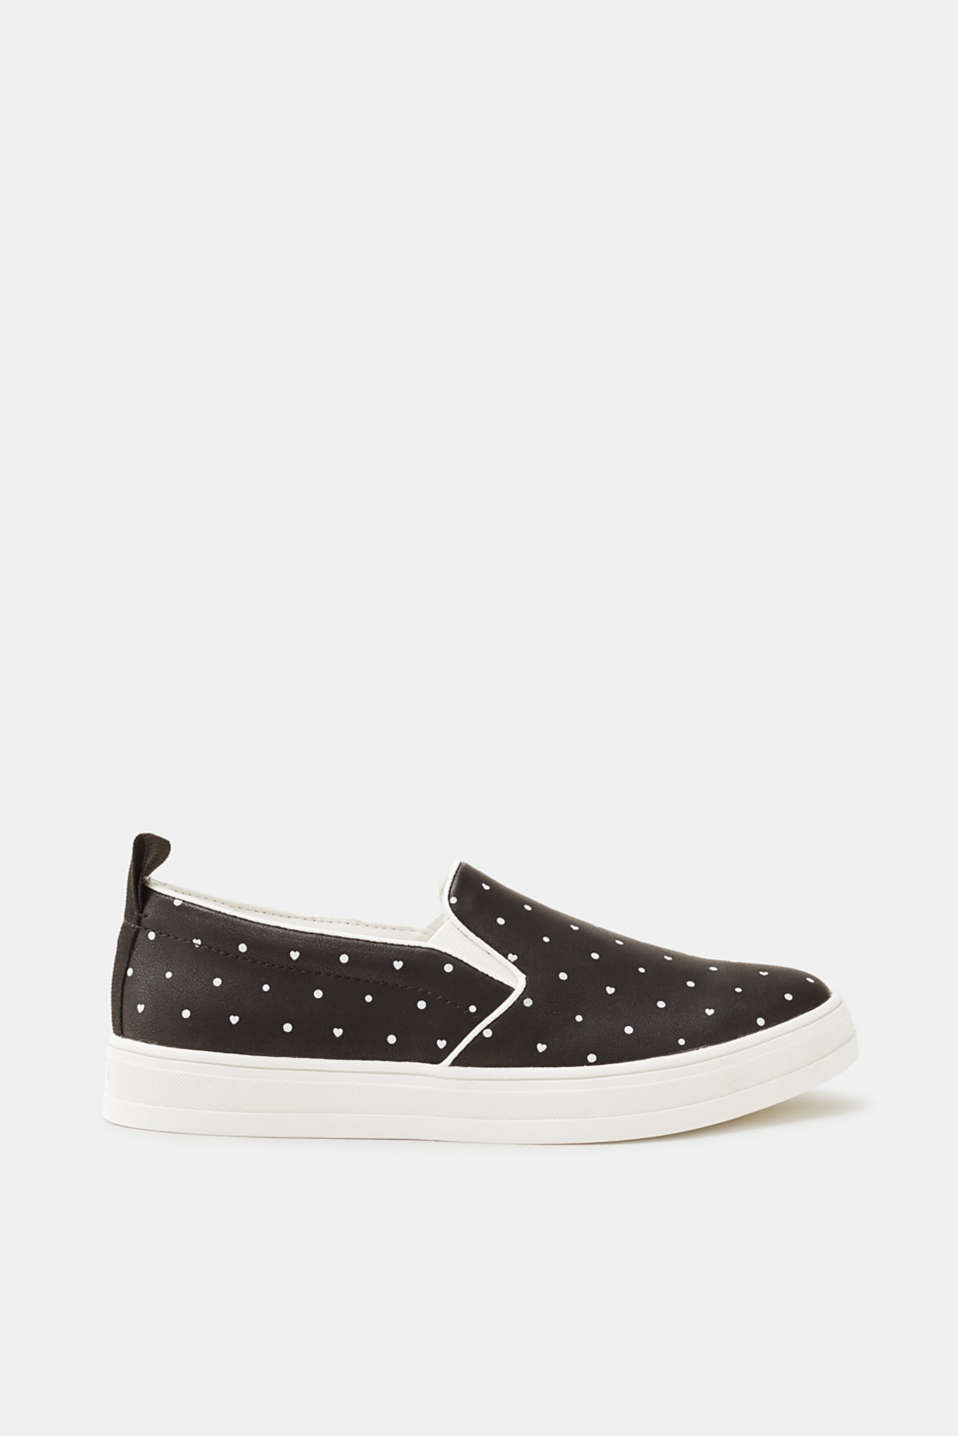 We love trainers! Thanks to the geometric minimalist print, these slip-on trainers are a trendy style favourite.